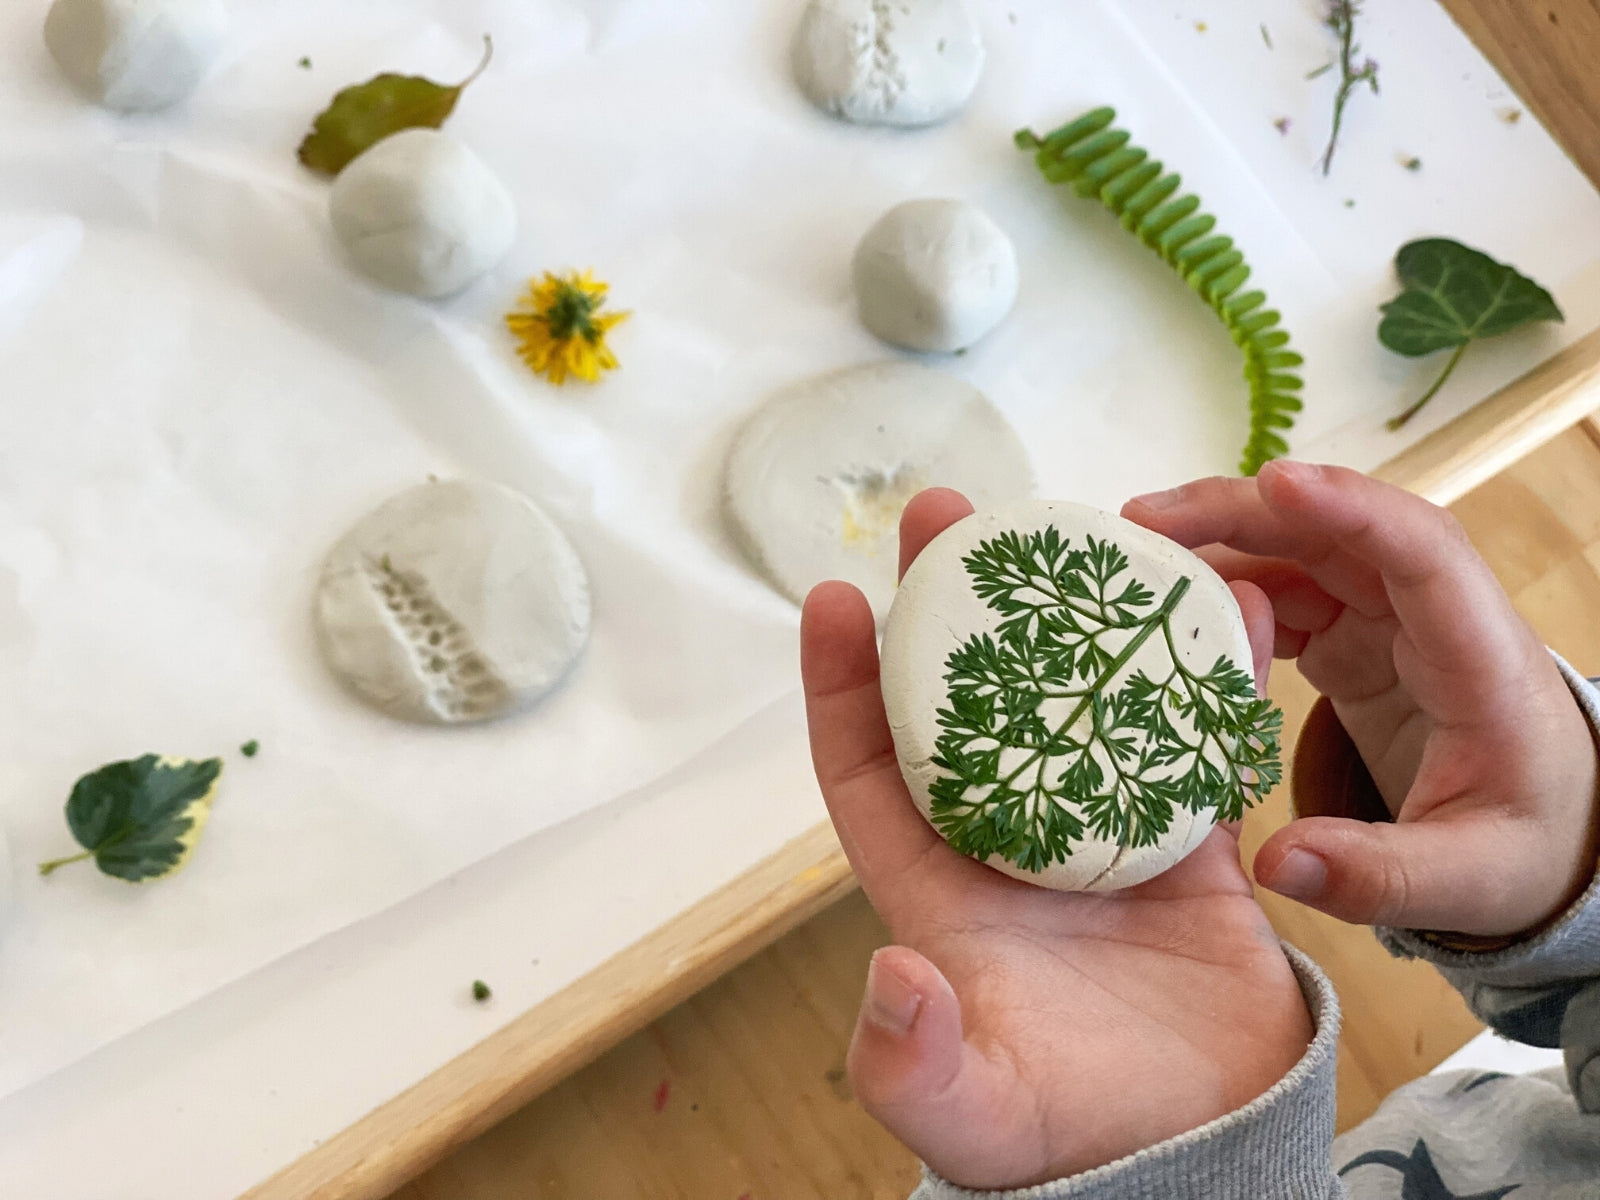 Press the clay ball down onto the leaves or flowers.